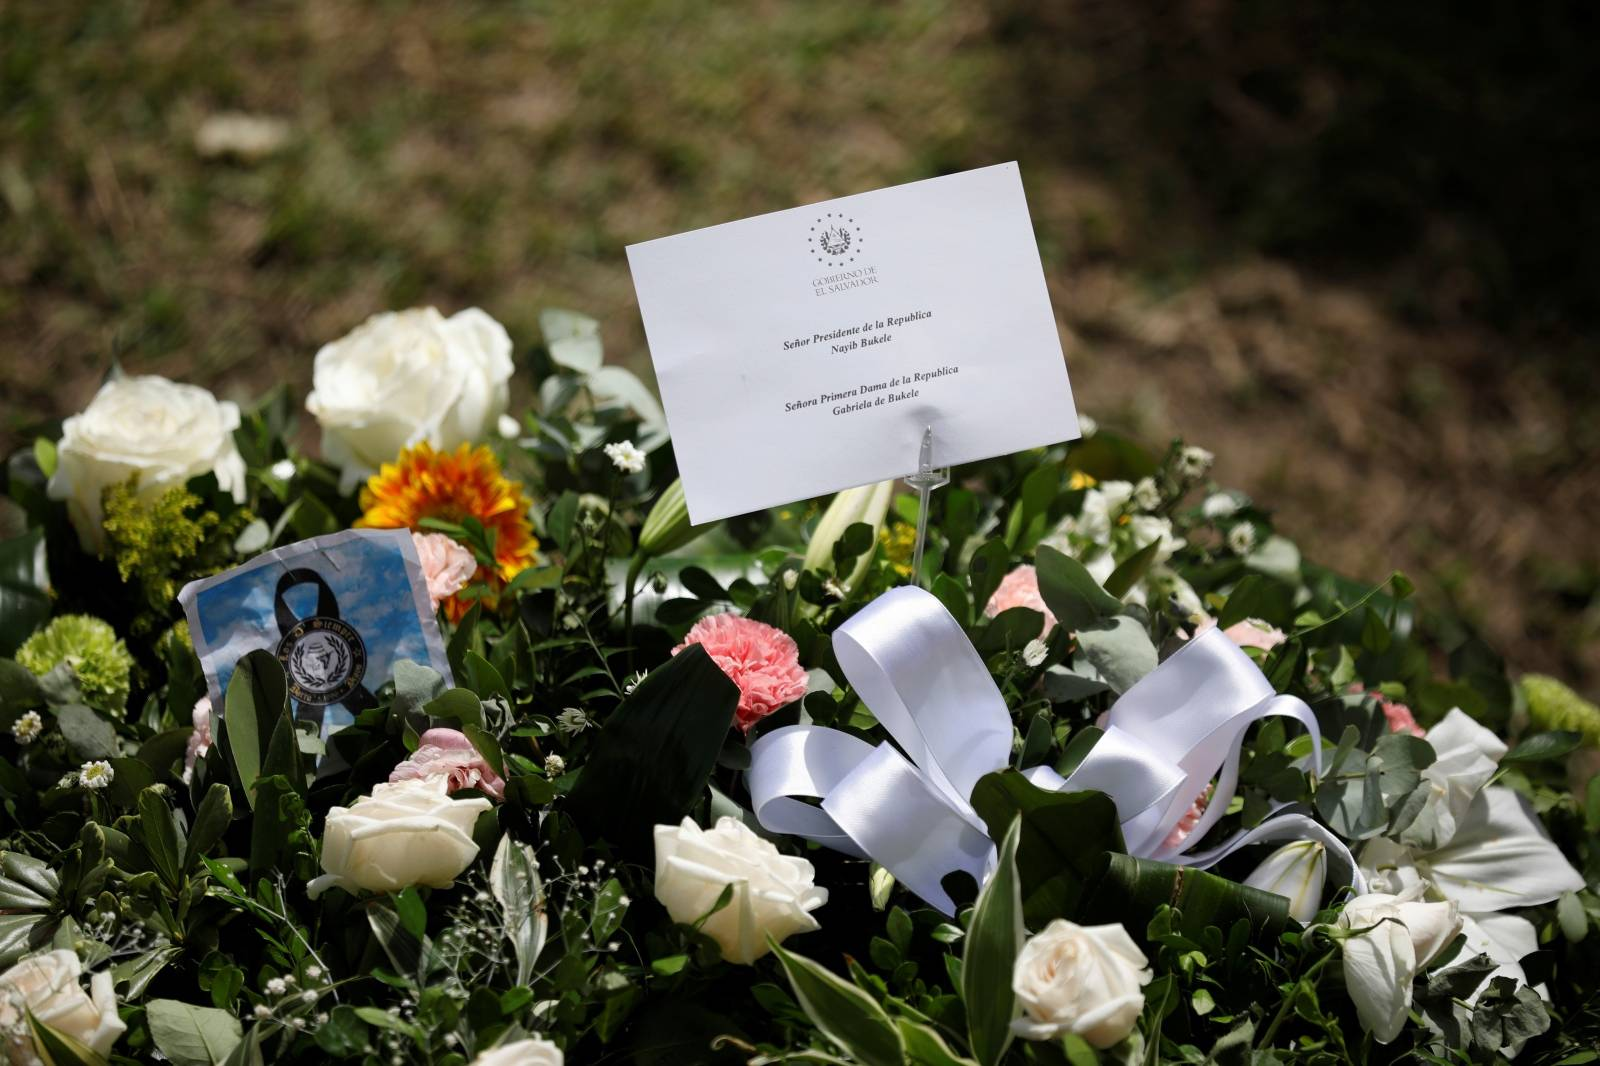 Flowers sent on behalf of the President of El Salvador, Nayib Bukele, and the first lady, Gabriela de Bukele, are seen at La Bermeja cemetery, where Oscar Alberto Martinez Ramirez and his daughter Valeria were buried in San Salvador